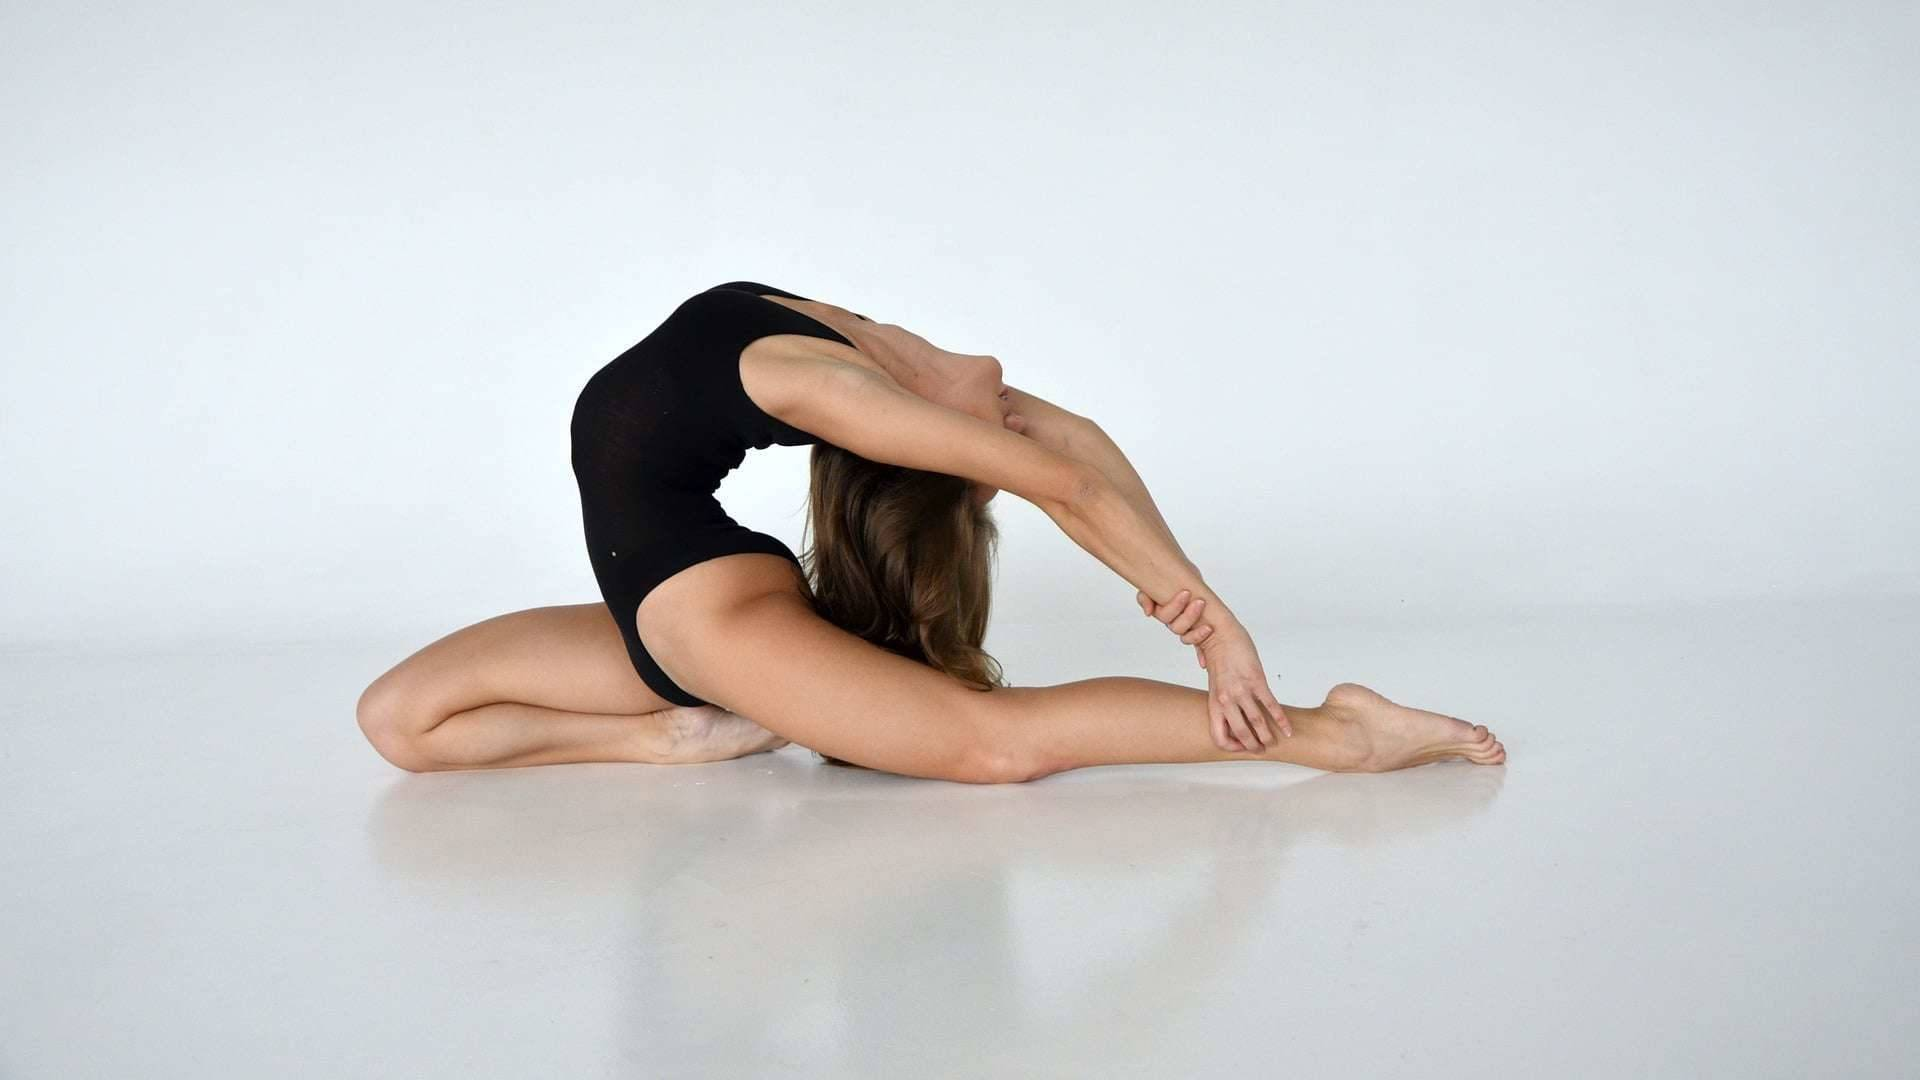 The Most Flexible People in The World